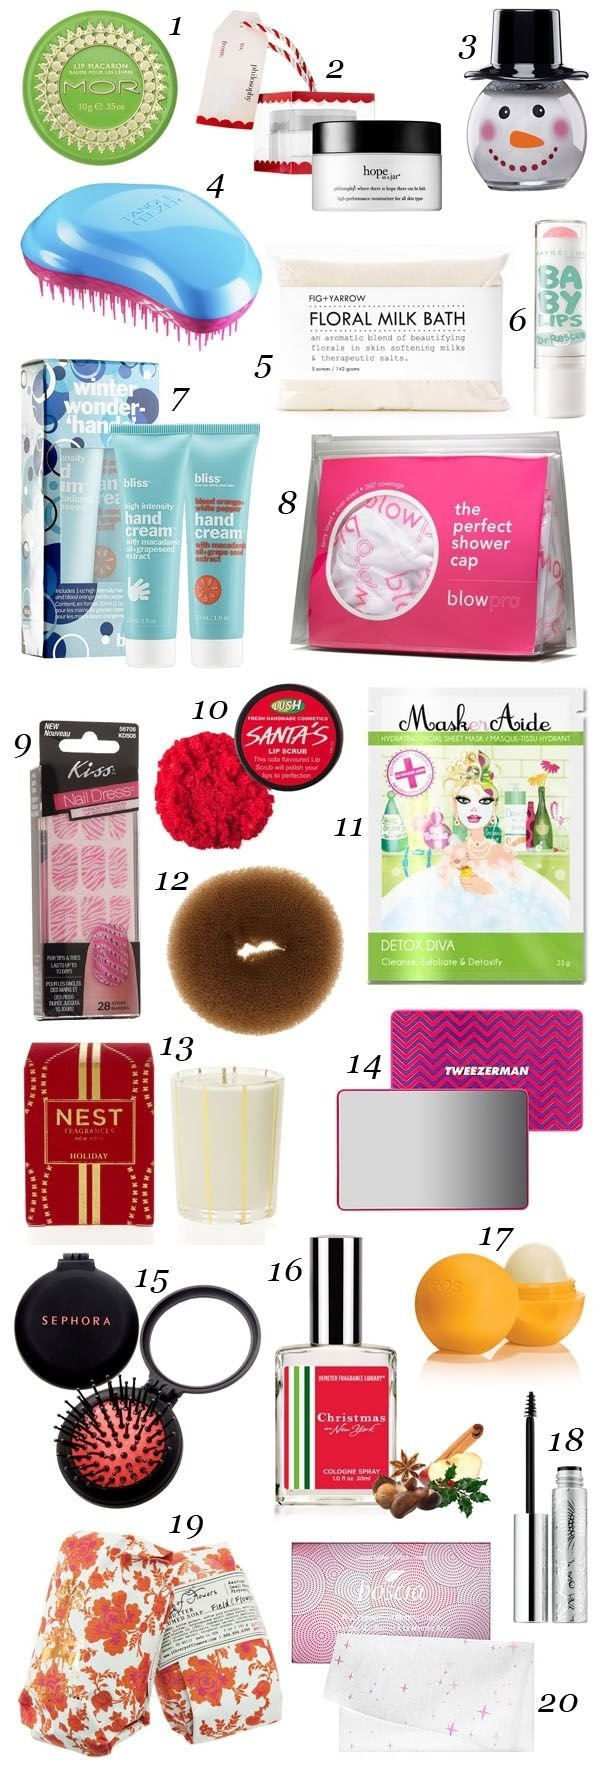 10 Pretty Stocking Stuffer Ideas For Teenage Girls 366 best stocking stuffers images on pinterest christmas 6 2020